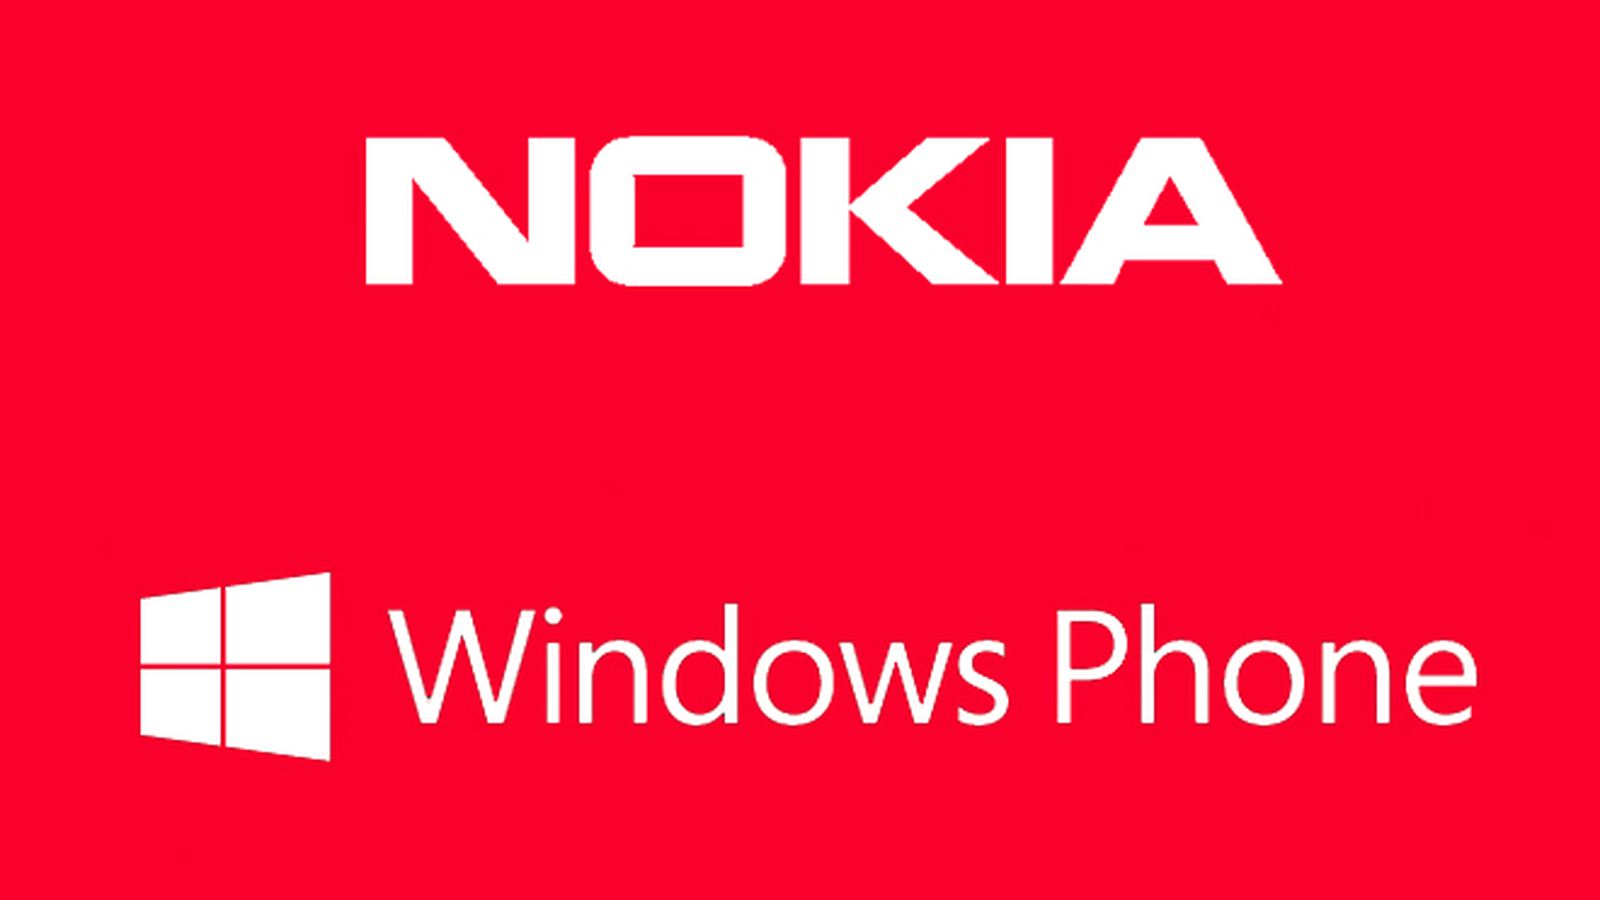 the brand personality of nokia Brand personality dimensions in the brazilian the brands with high scores in this dimension in brazil are almost all global brands such as nokia, motorola.